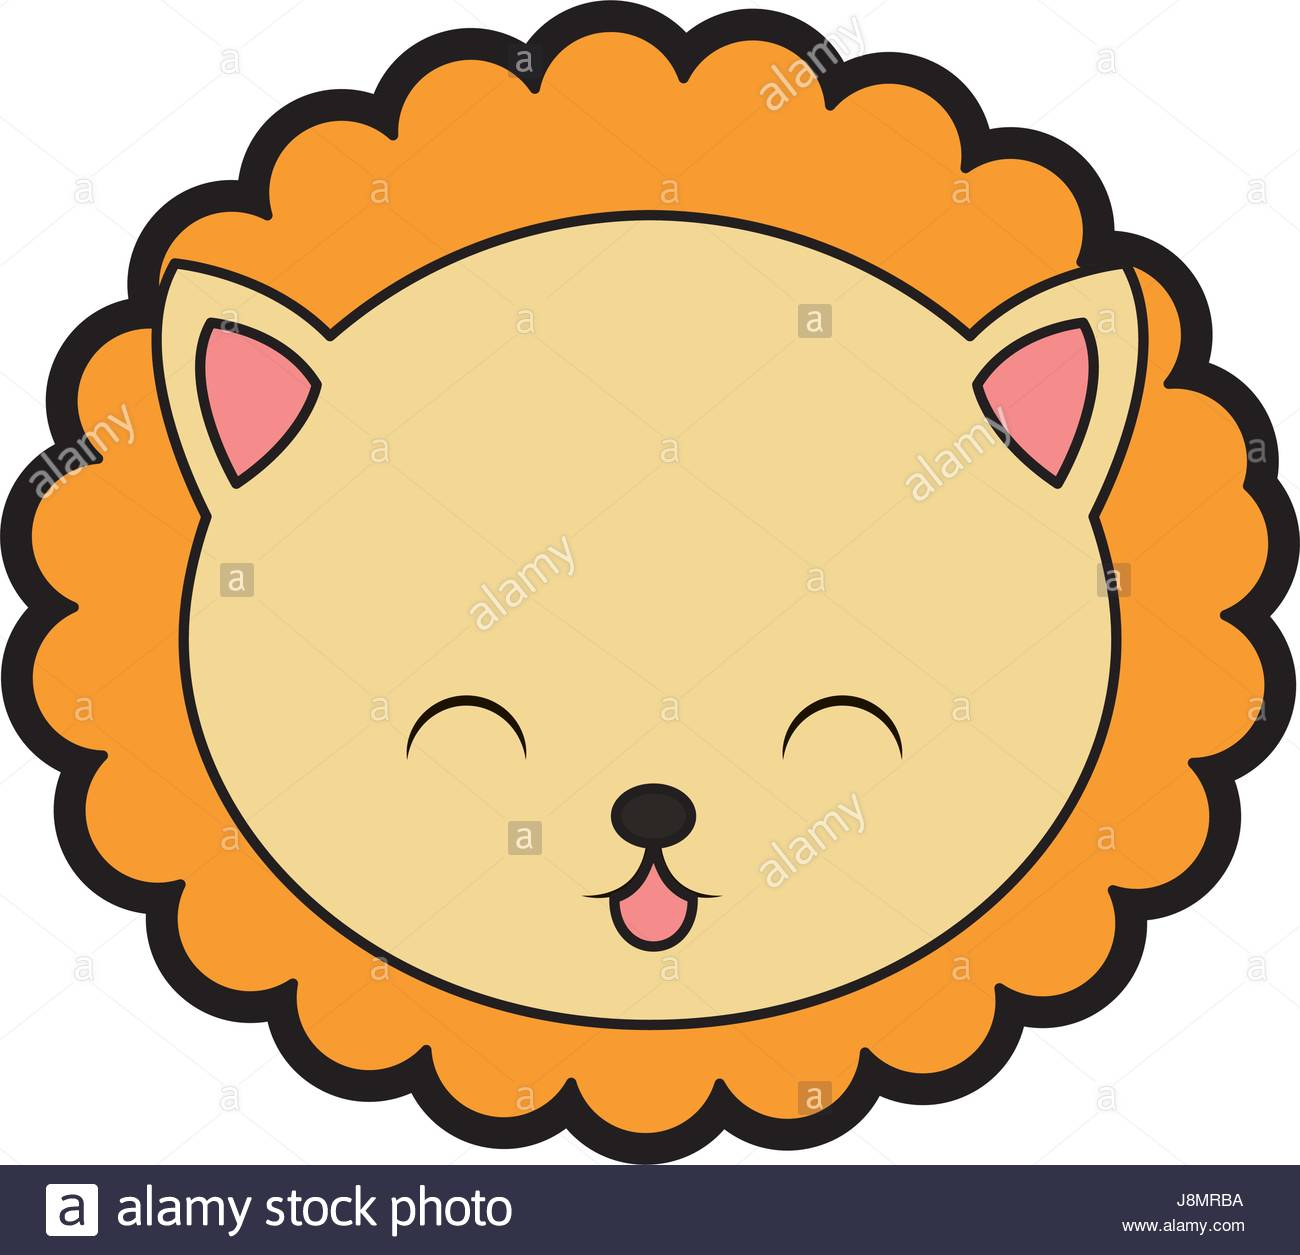 1300x1255 Cute Lion Face Cartoon Stock Vector Art Amp Illustration, Vector